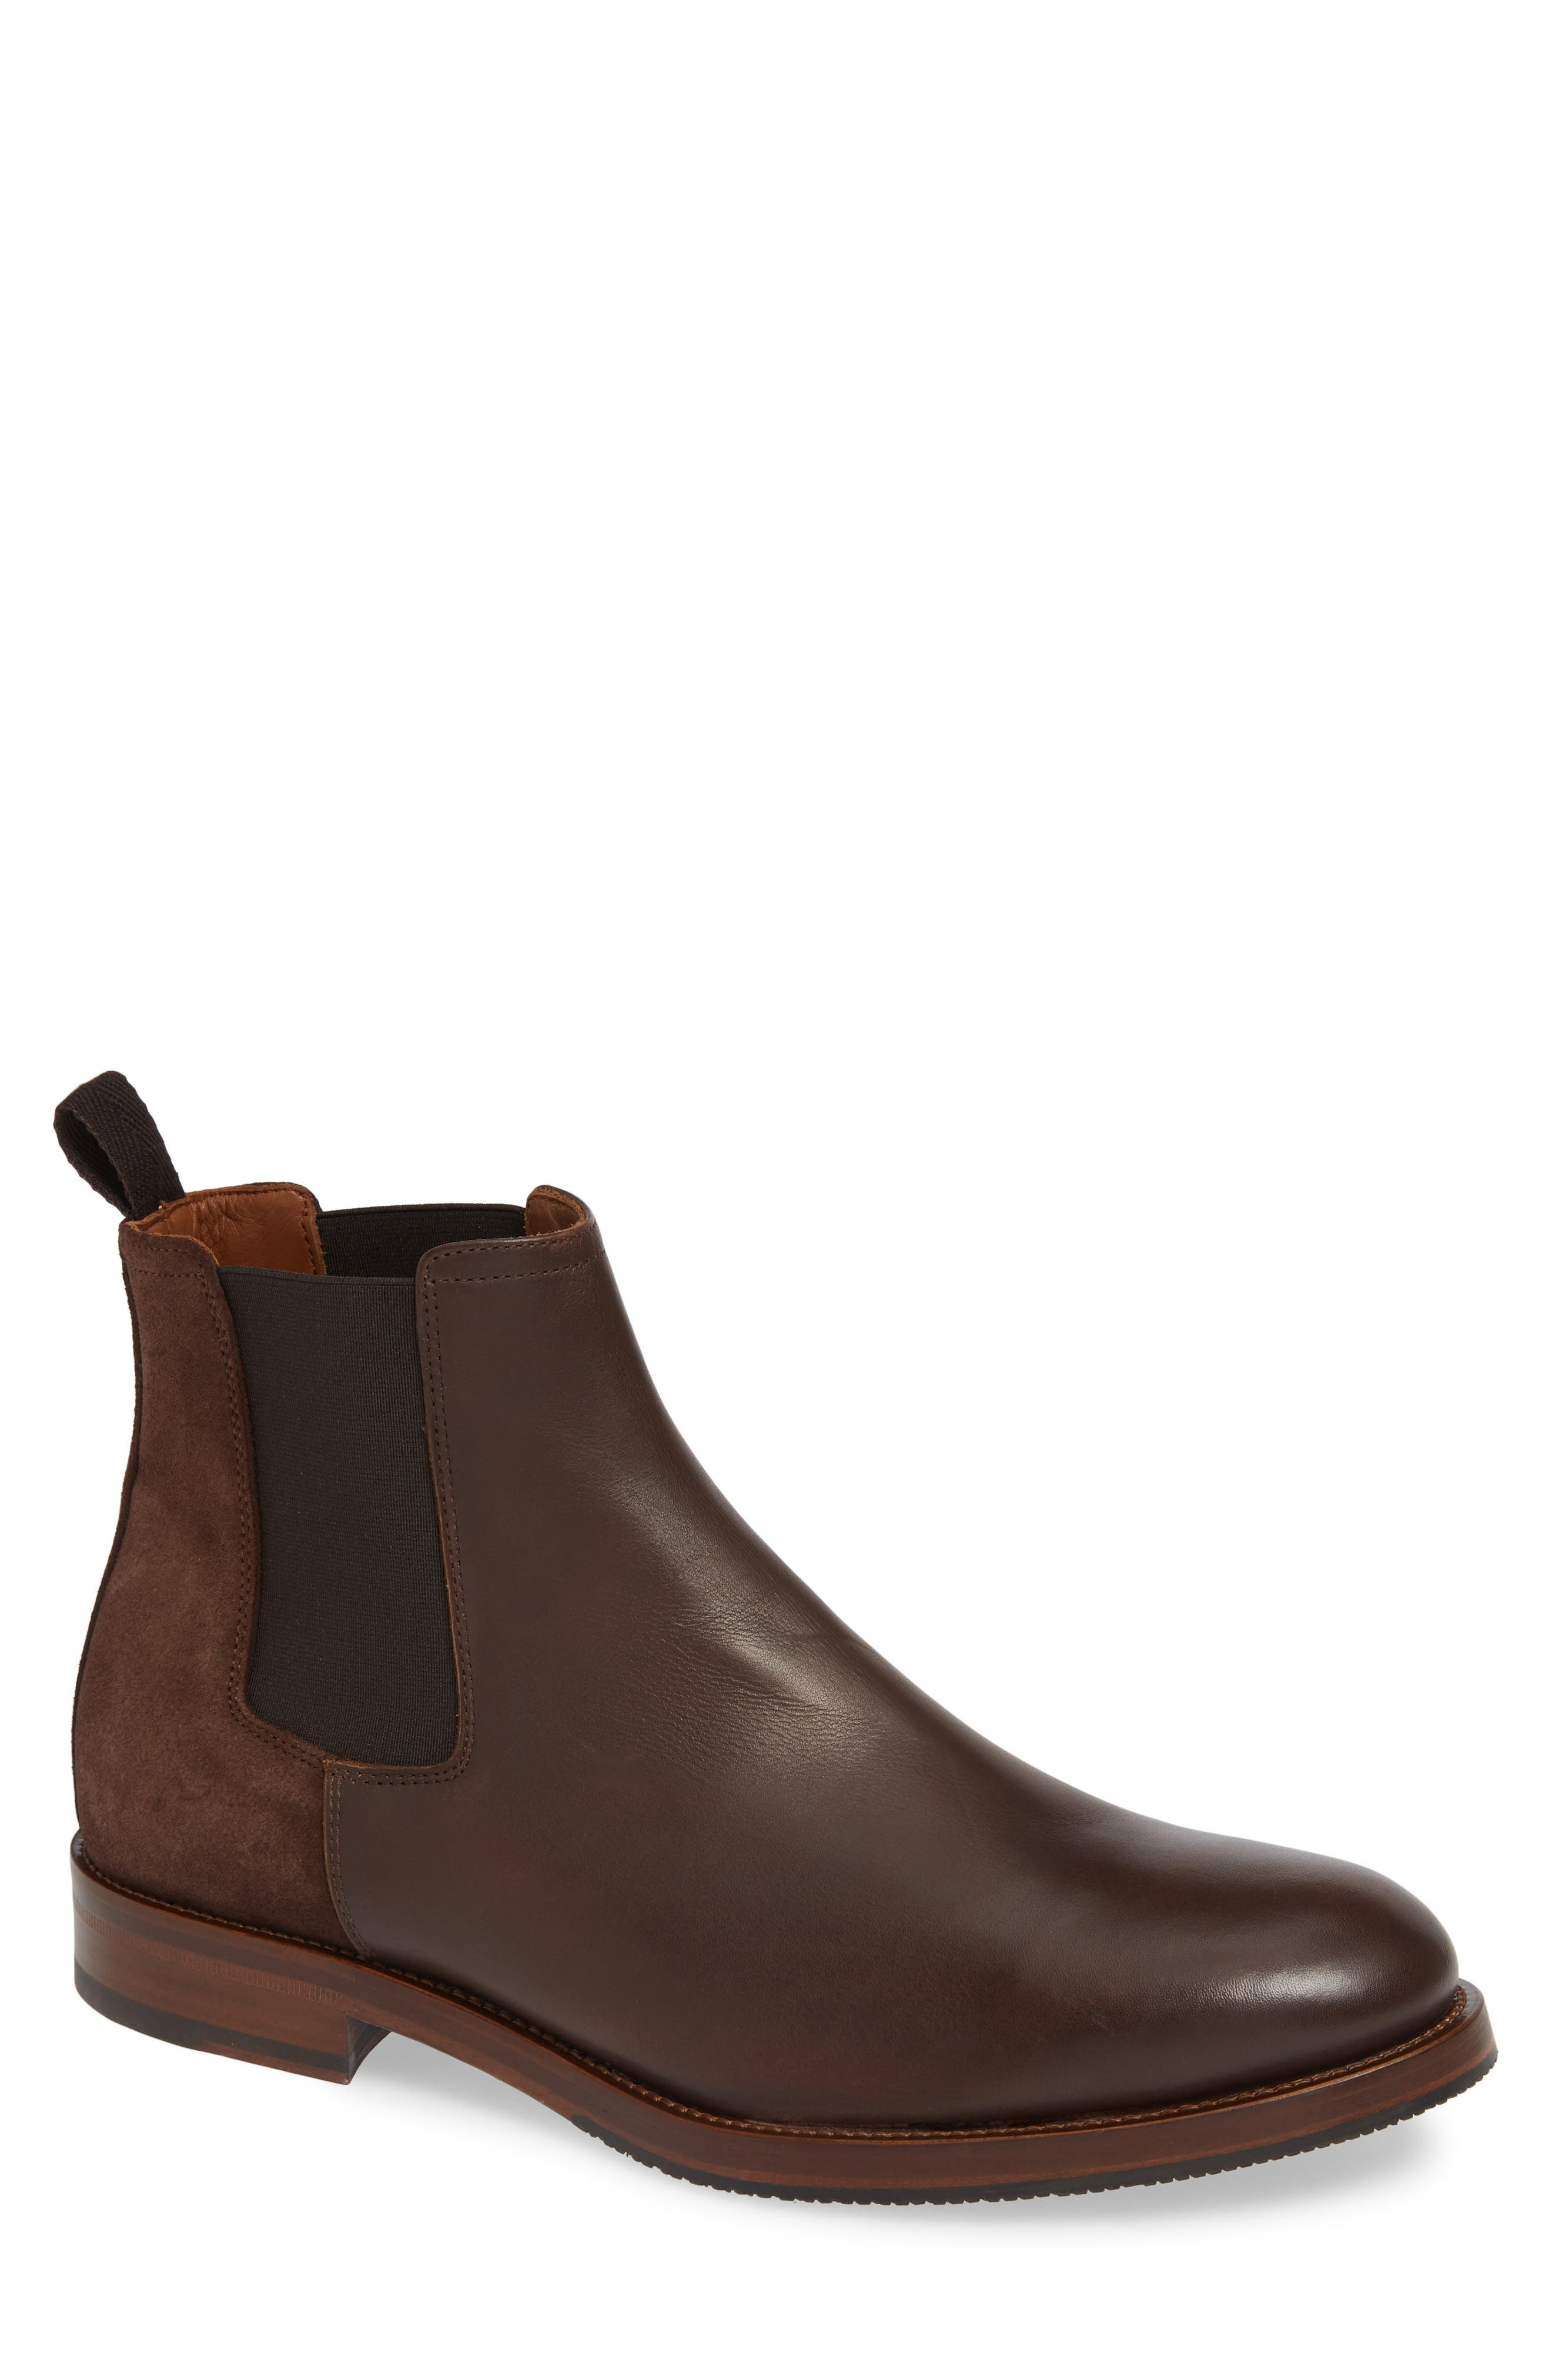 Aquatalia Giancarlo Weatherproof Chelsea Boot- Brown